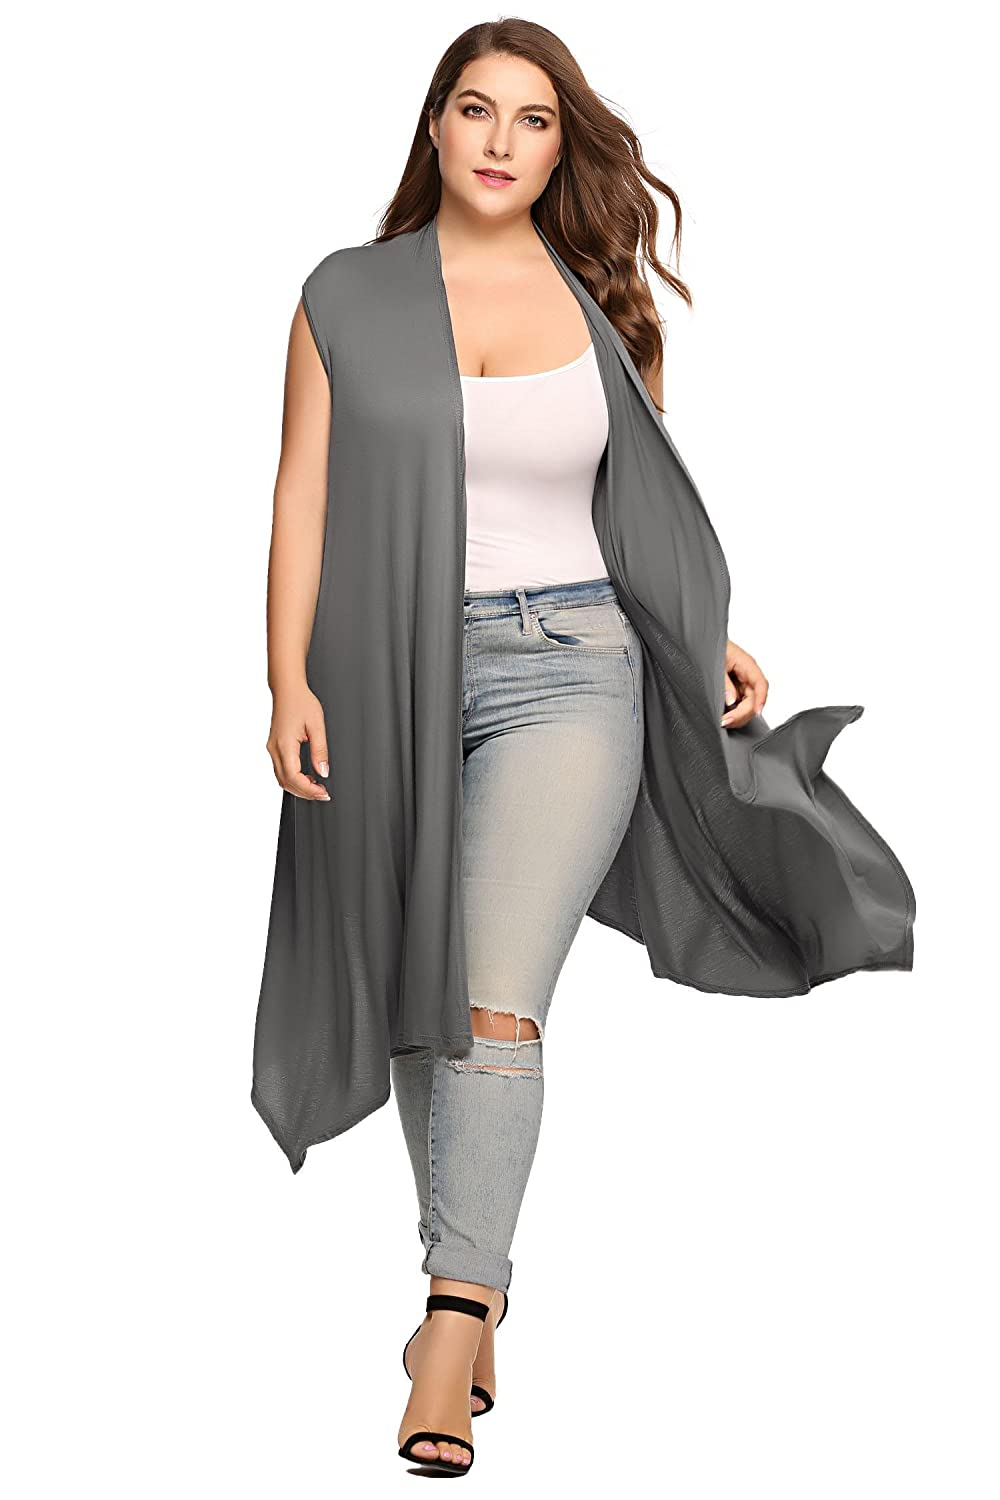 42f120a221 Zeagoo Womens Plus Size Sleeveless Cardigan Sweater Vest Solid Asymetric  Hem Open Front Soft Long Maxi Cardigan at Amazon Women s Clothing store